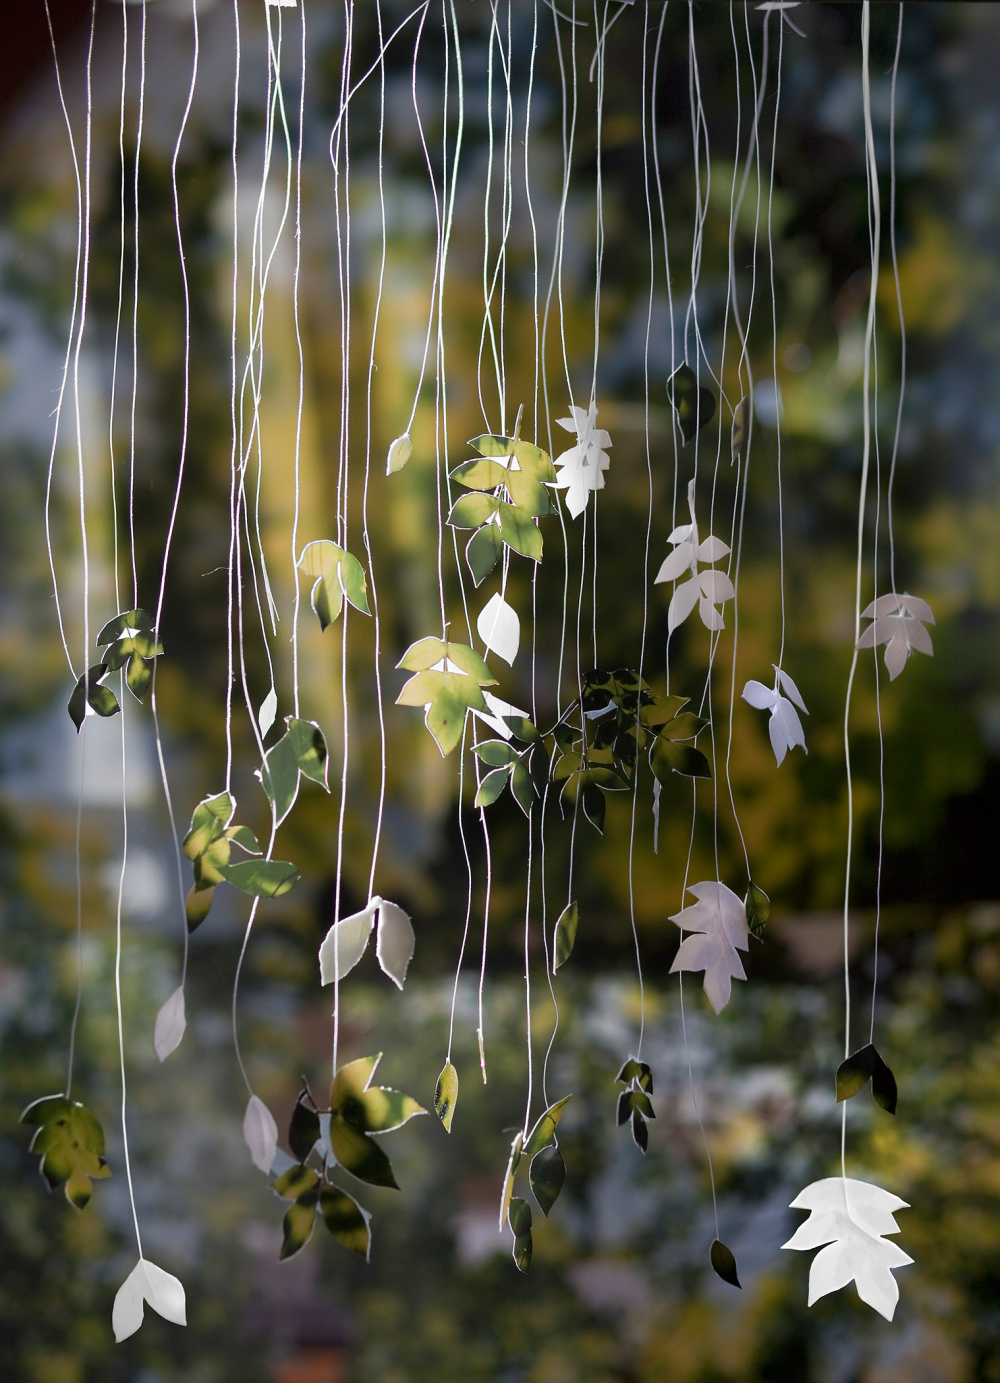 Becky Comber, Loose Leaves, from the series Broken Horizons, 2014